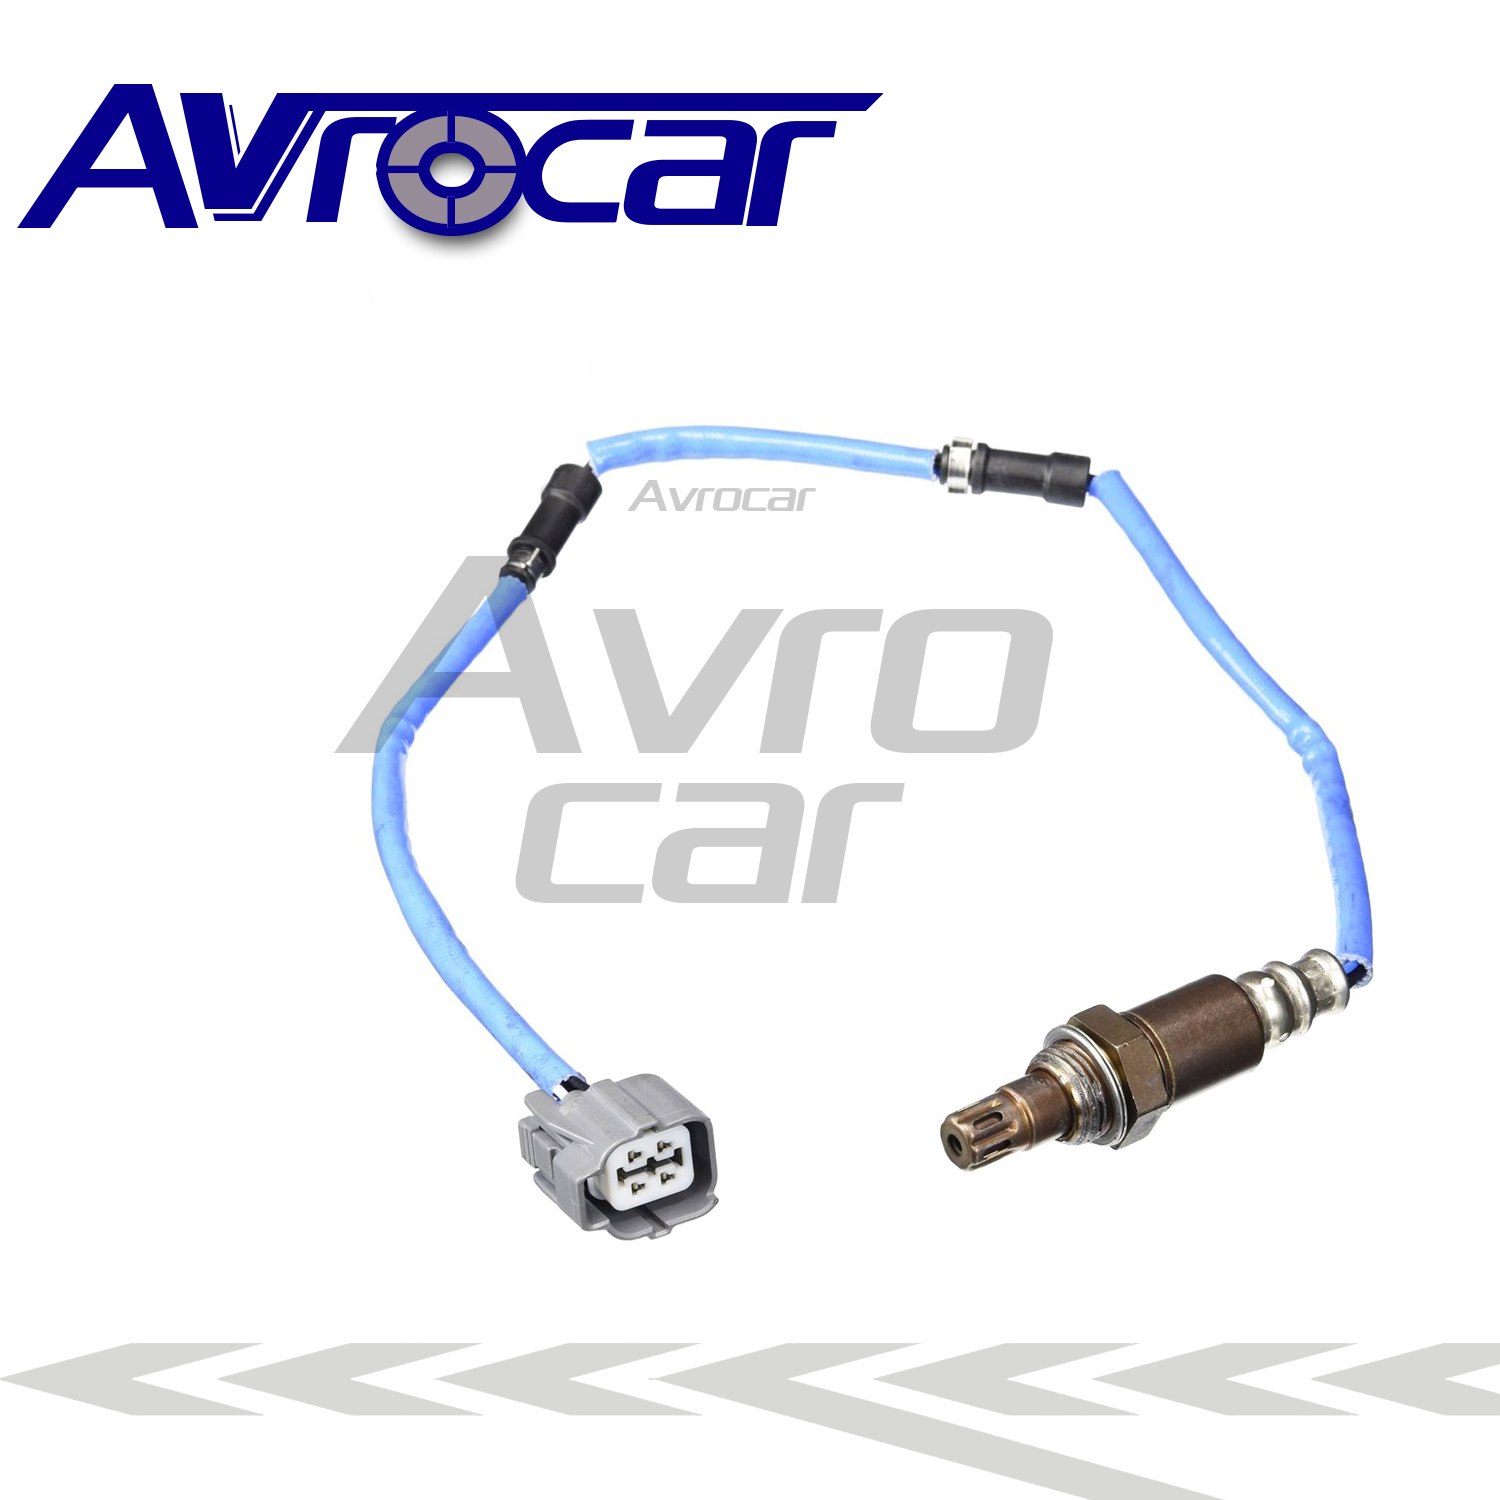 Auto Replacement Parts Capable Avrocar 1pc High Quality O2 Oxygen Sensor 36531rbb003 Fit For Honda Accord Tourer Dox-1424 36531-rbb-003 2003-4 Wire Lambda Regular Tea Drinking Improves Your Health Automobiles Sensors